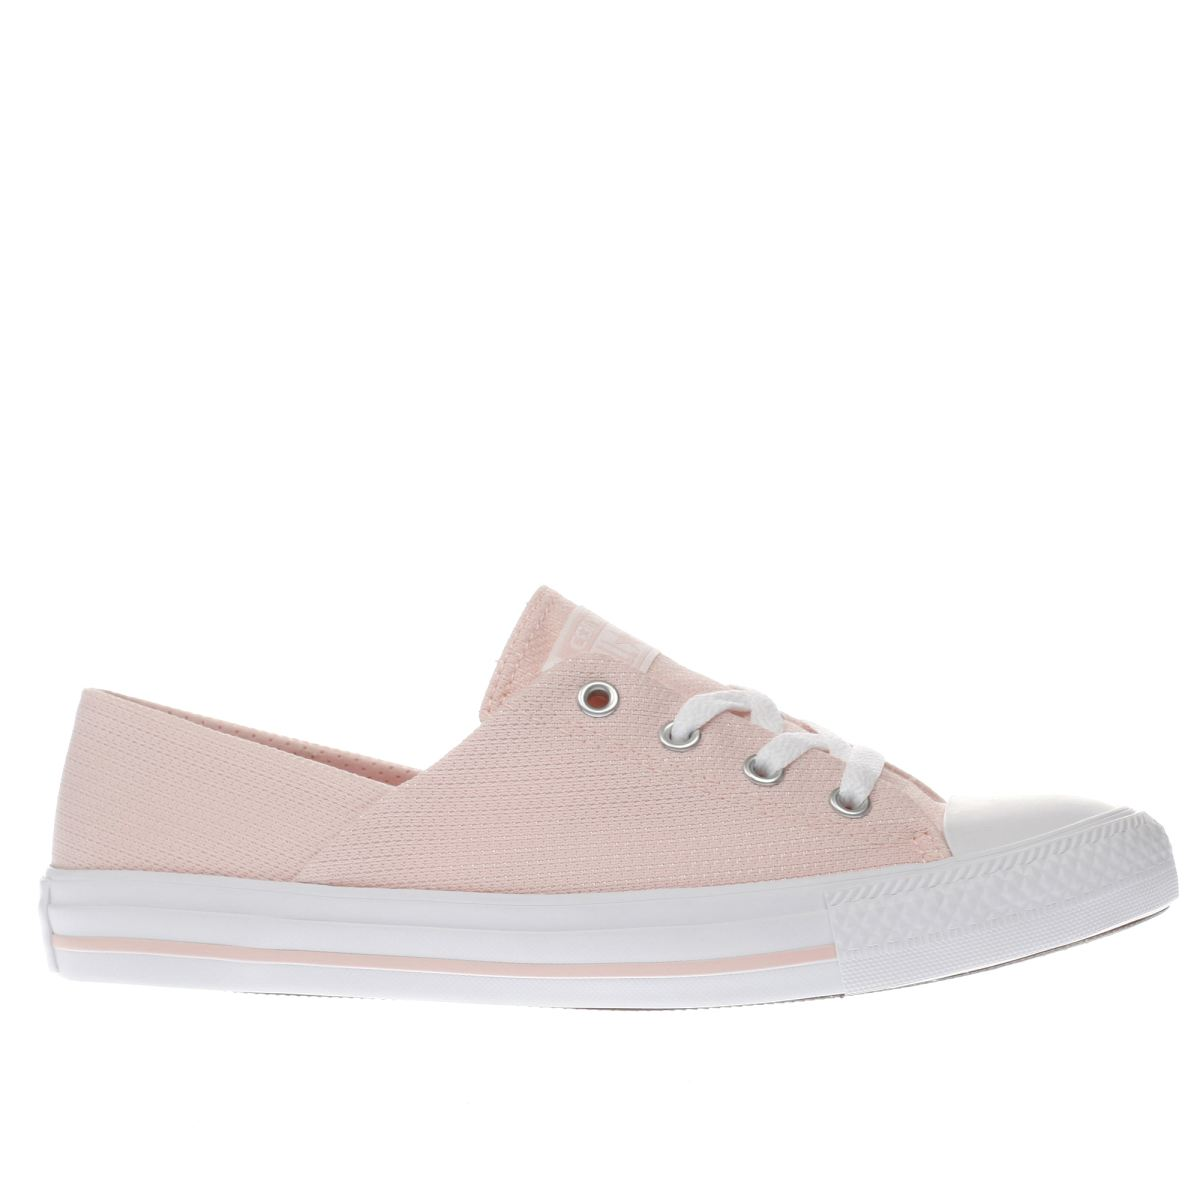 converse pale pink coral micro dot knit trainers